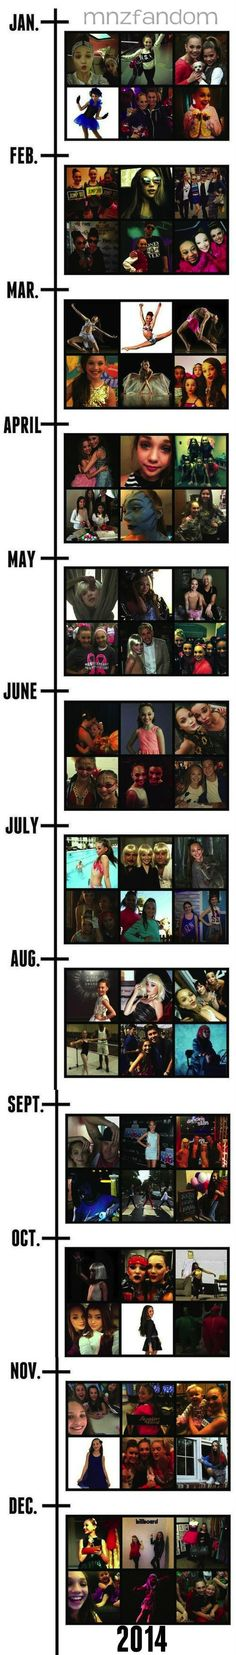 2014 has been a good year for Maddie, who knows what else is in store for her?